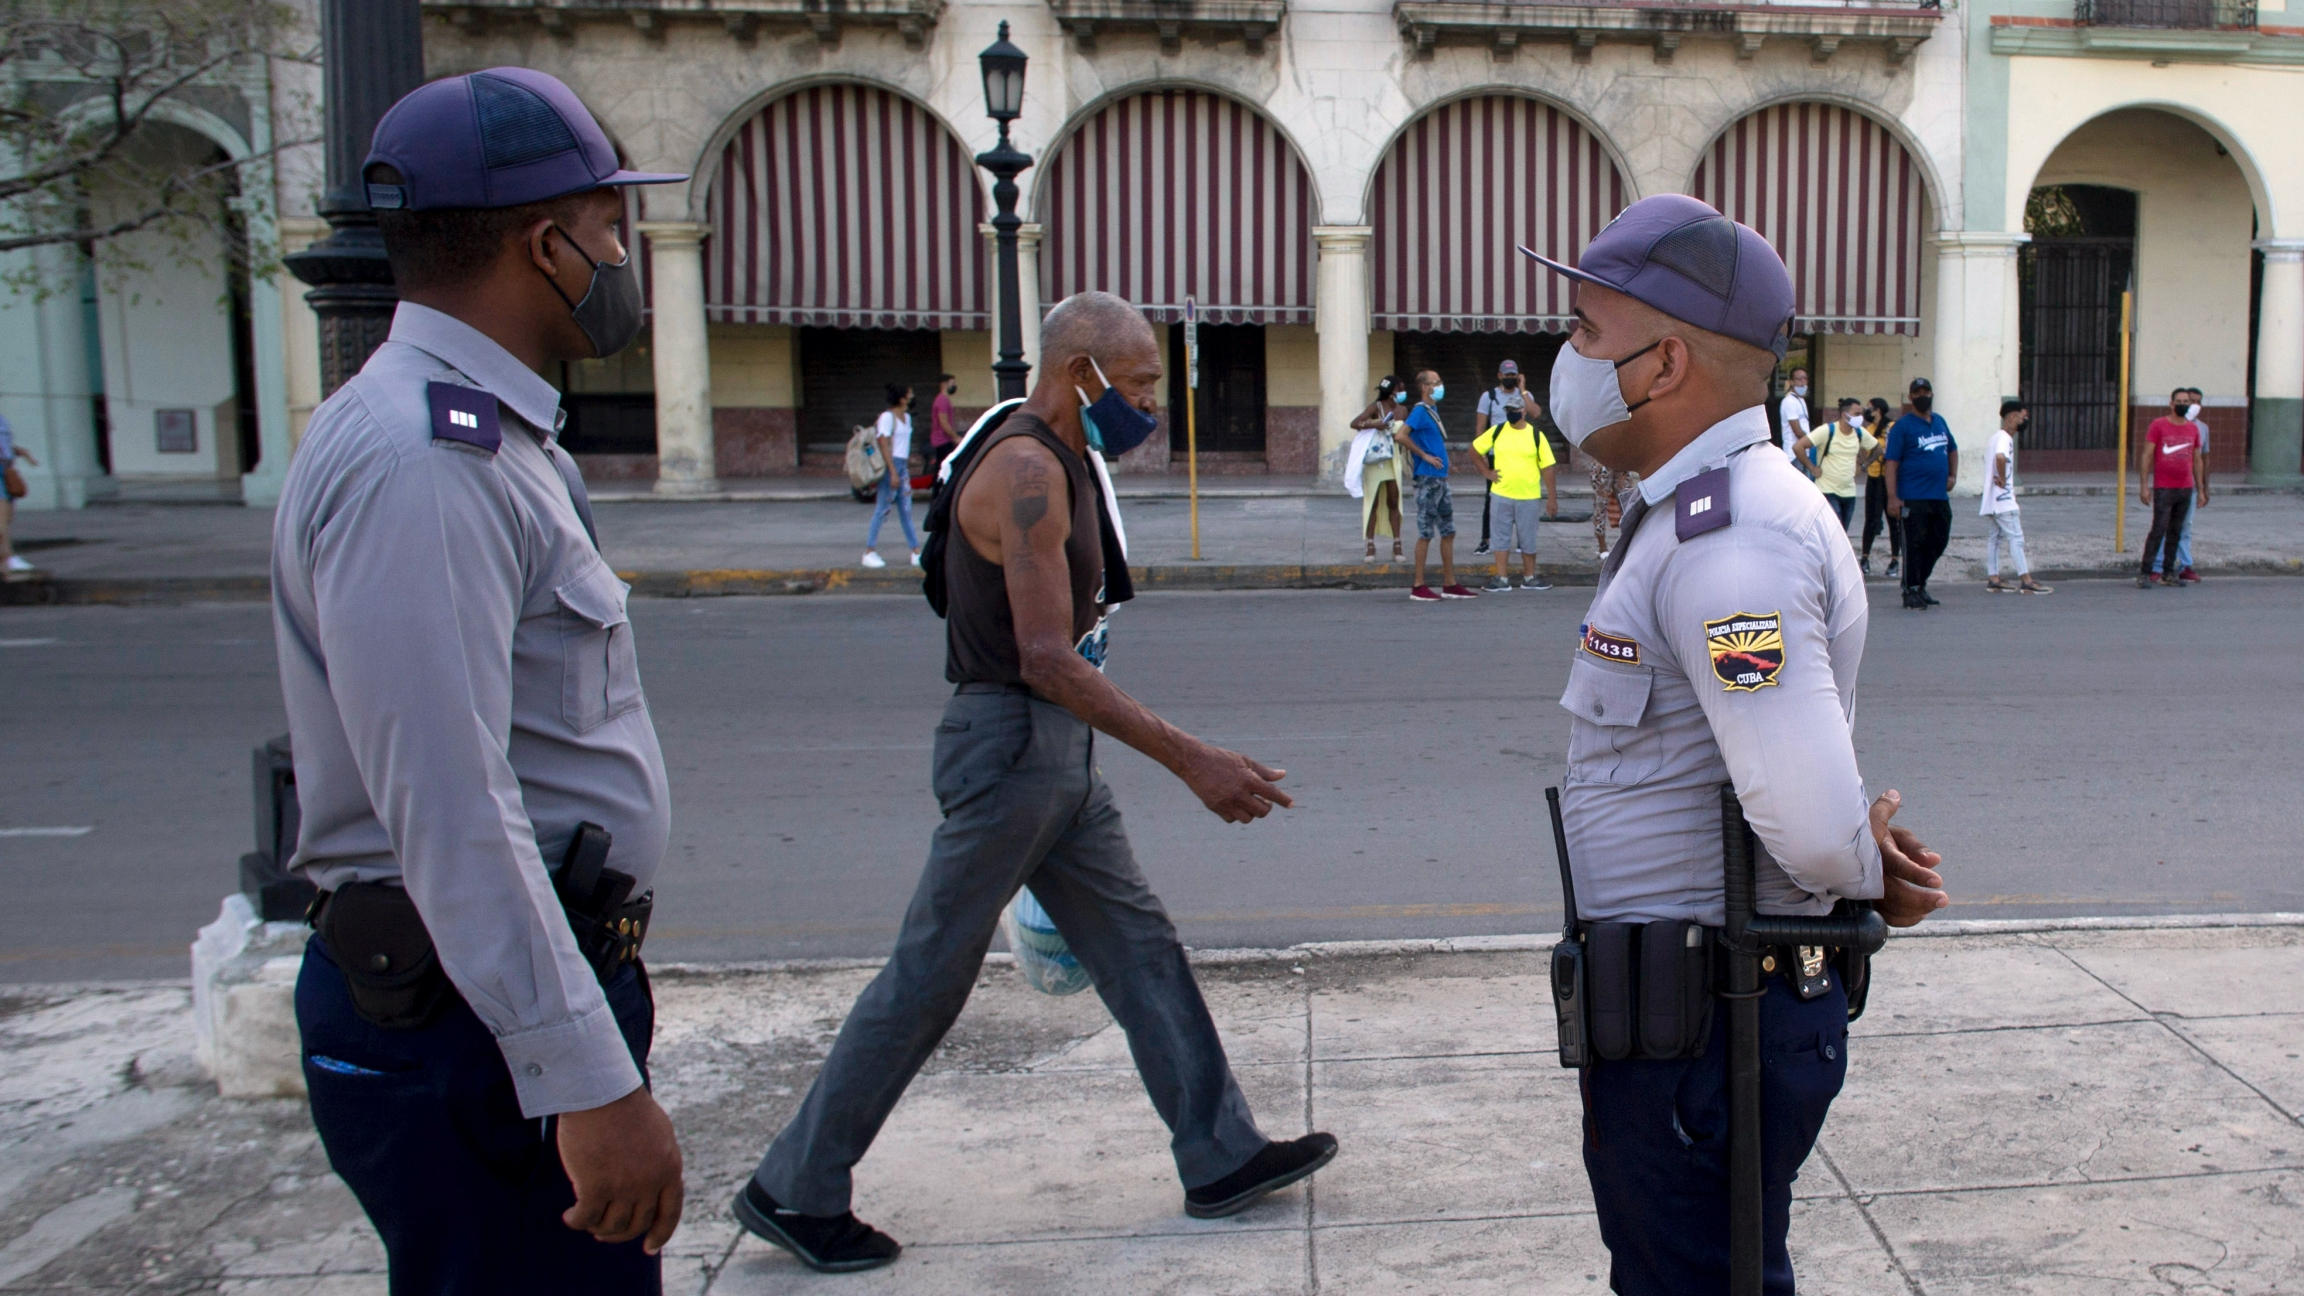 Police stand guard near the National Capitol building in Havana, Cuba, July 12, 2021, the day after protests against food shortages and high prices amid the coronavirus crisis.